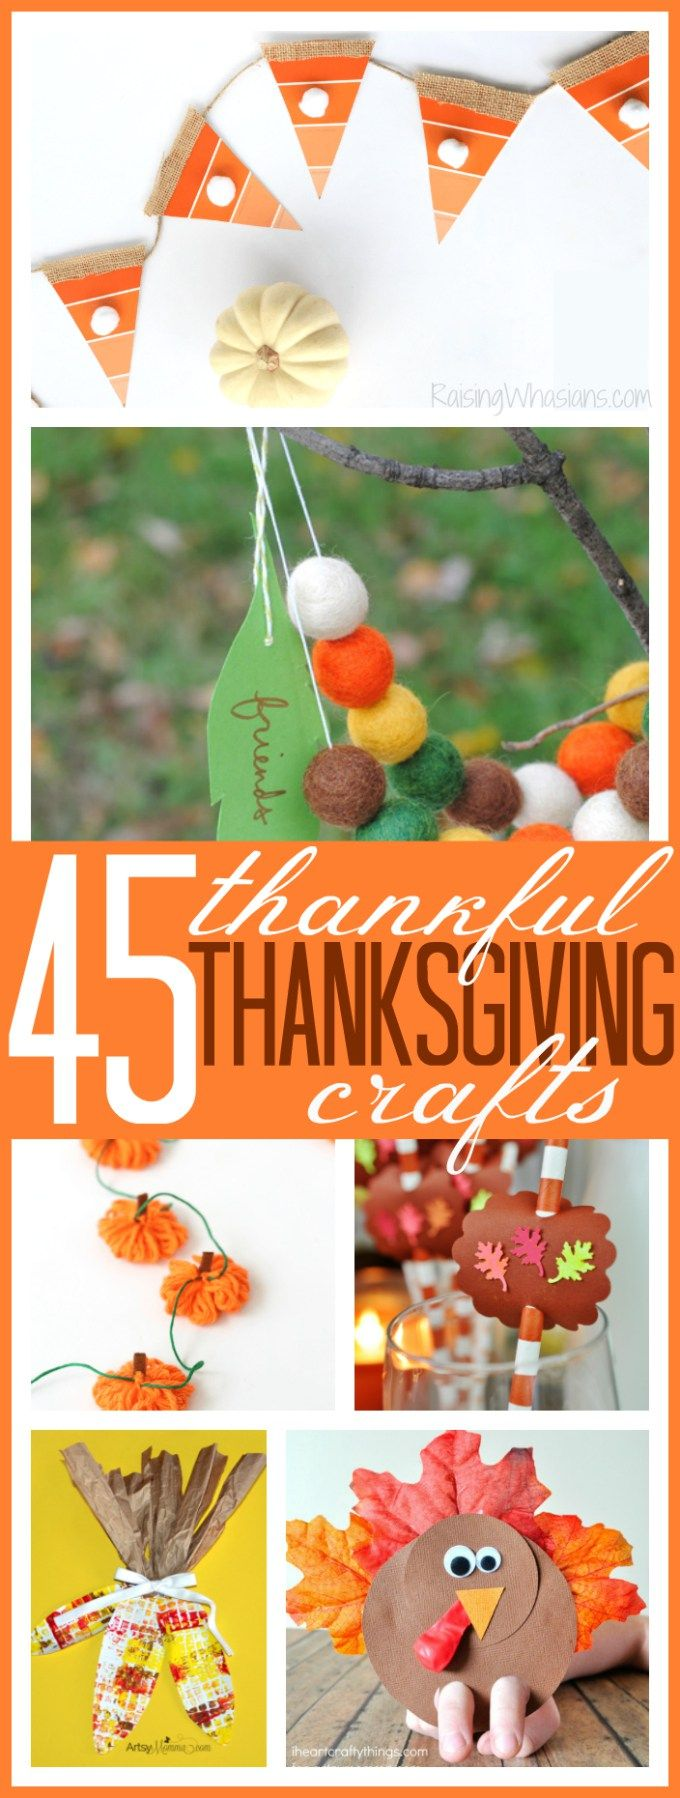 45 Thankful Thanksgiving Crafts fo Kids - Raising Whasians